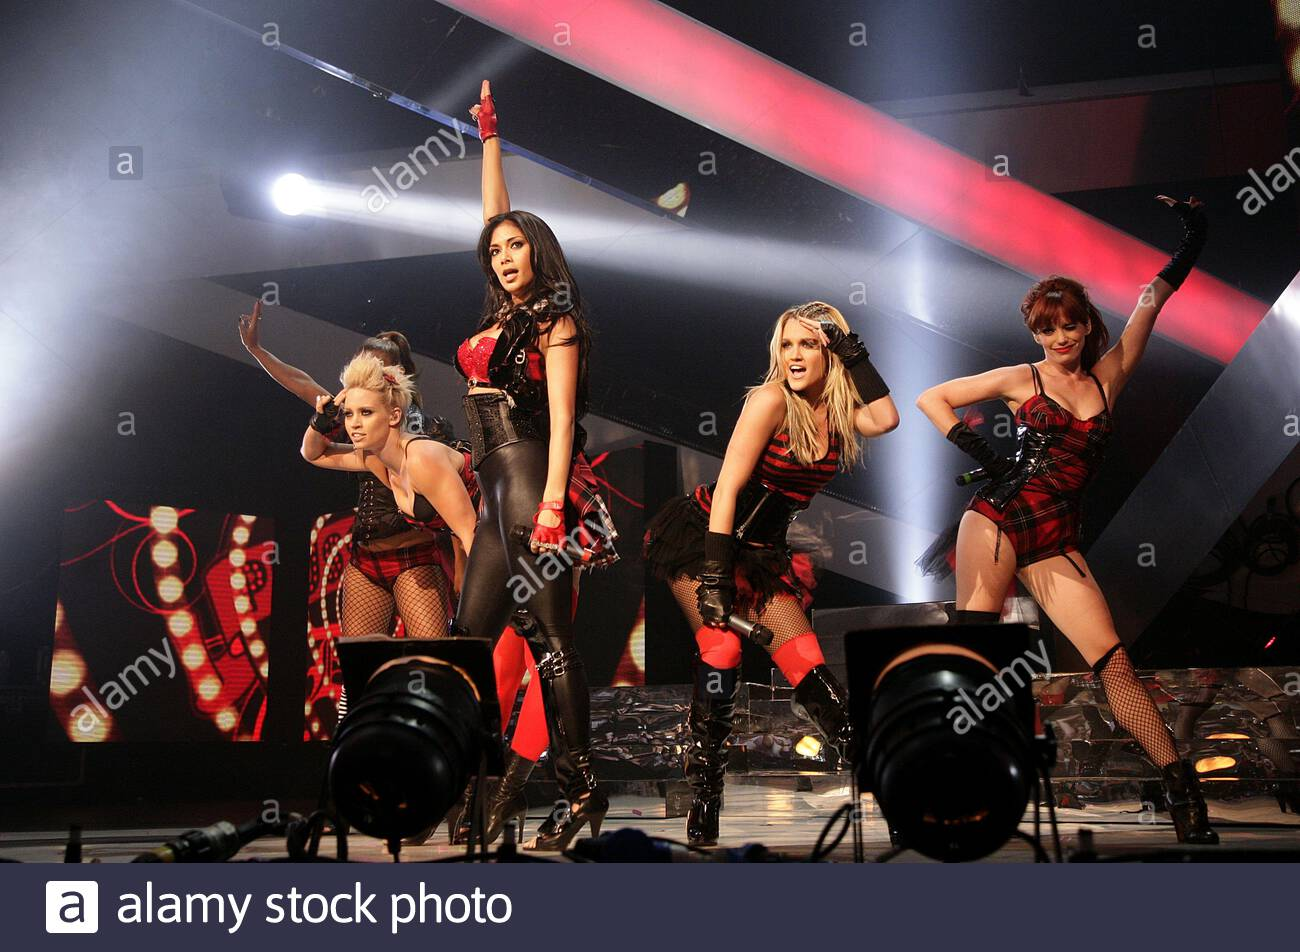 File photo dated 18/09/08 of The Pussycat Dolls performing at the Vodafone Live Music Awards 2008, at Brixton Academy, Brixton, London. The group have announced a reunion tour of the UK and Ireland in April 2020 - 10 years since their split. Stock Photo